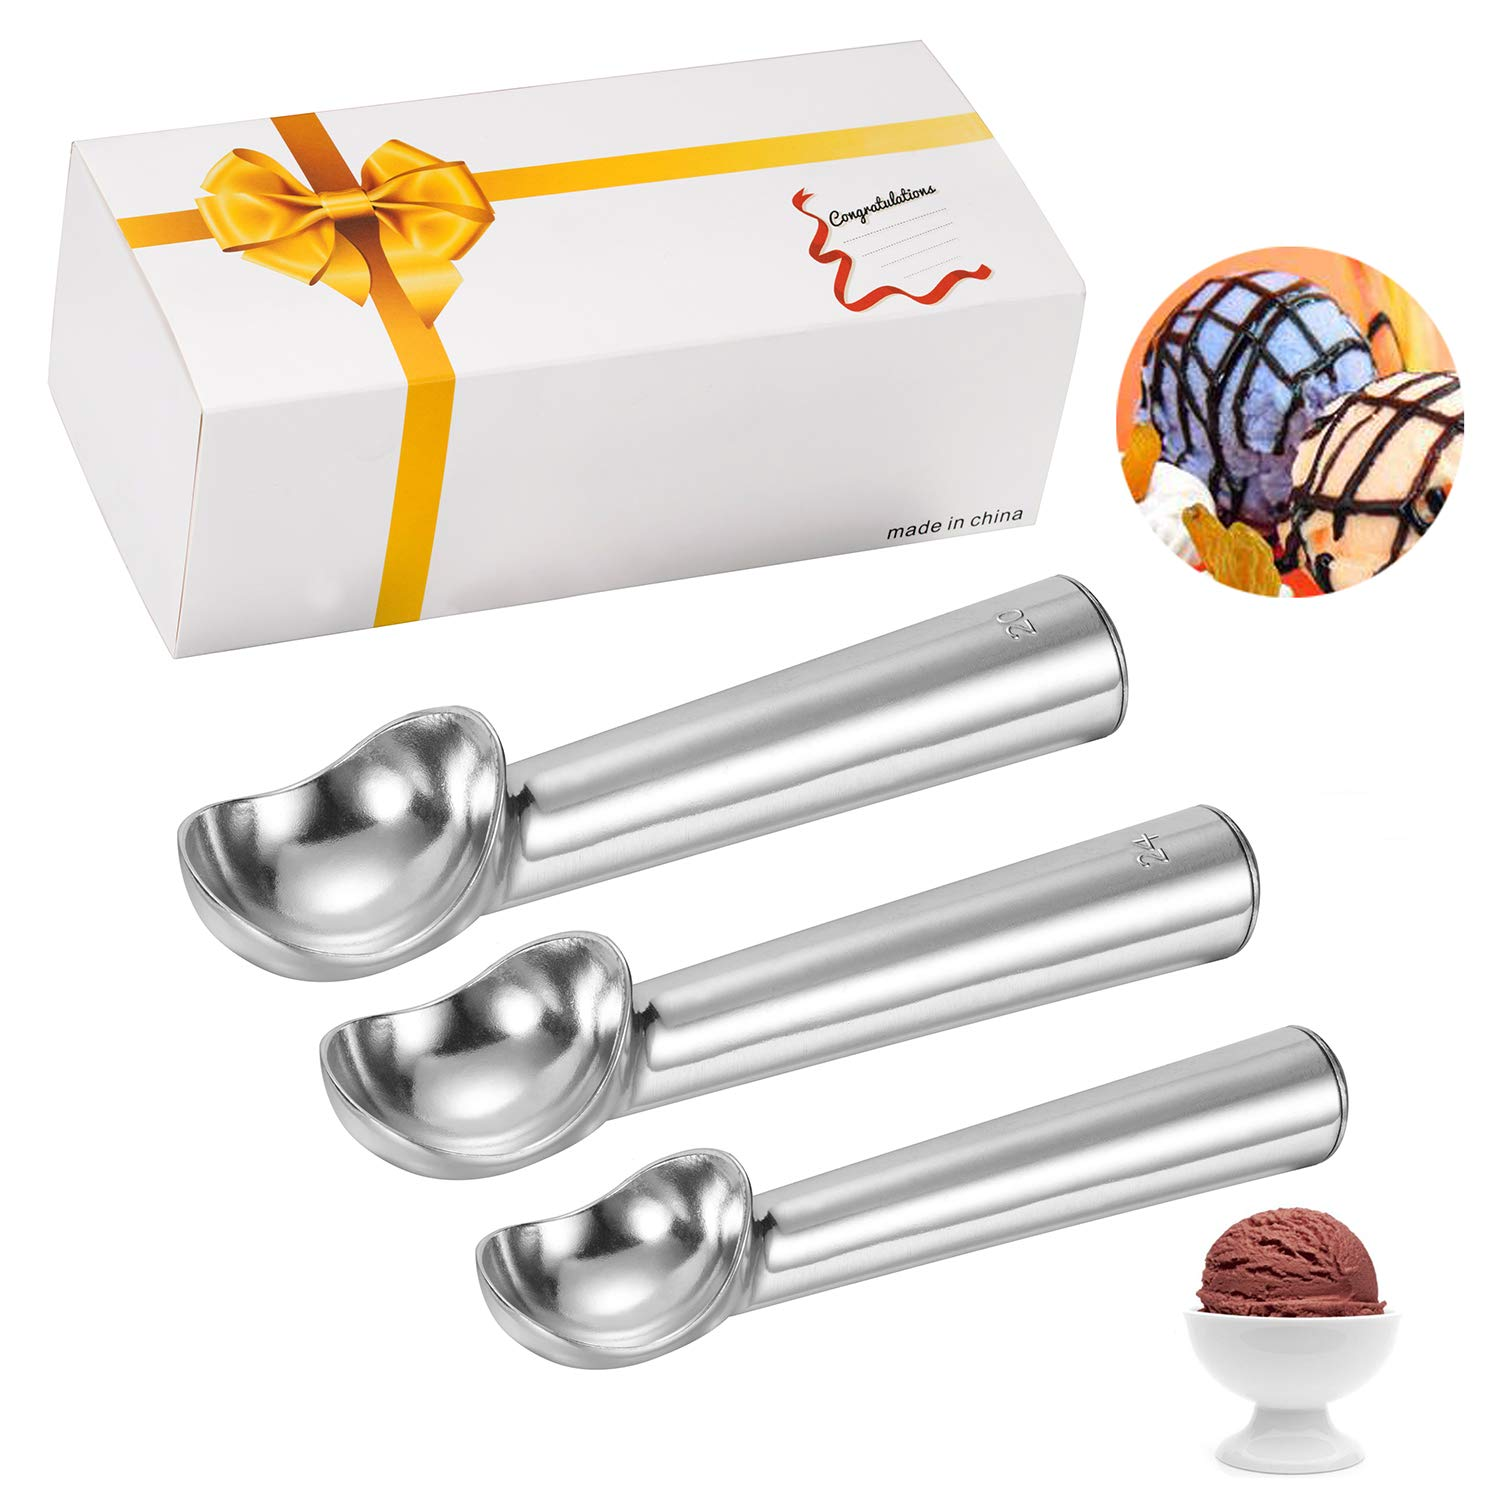 Hard Ice Cream Scoops- Anti-Freeze Solid Stainless Steel Scoops No-Thaw for Everything from Hard Ice Cream to Gelato and Sorbet MAGICYOYO 4335513034